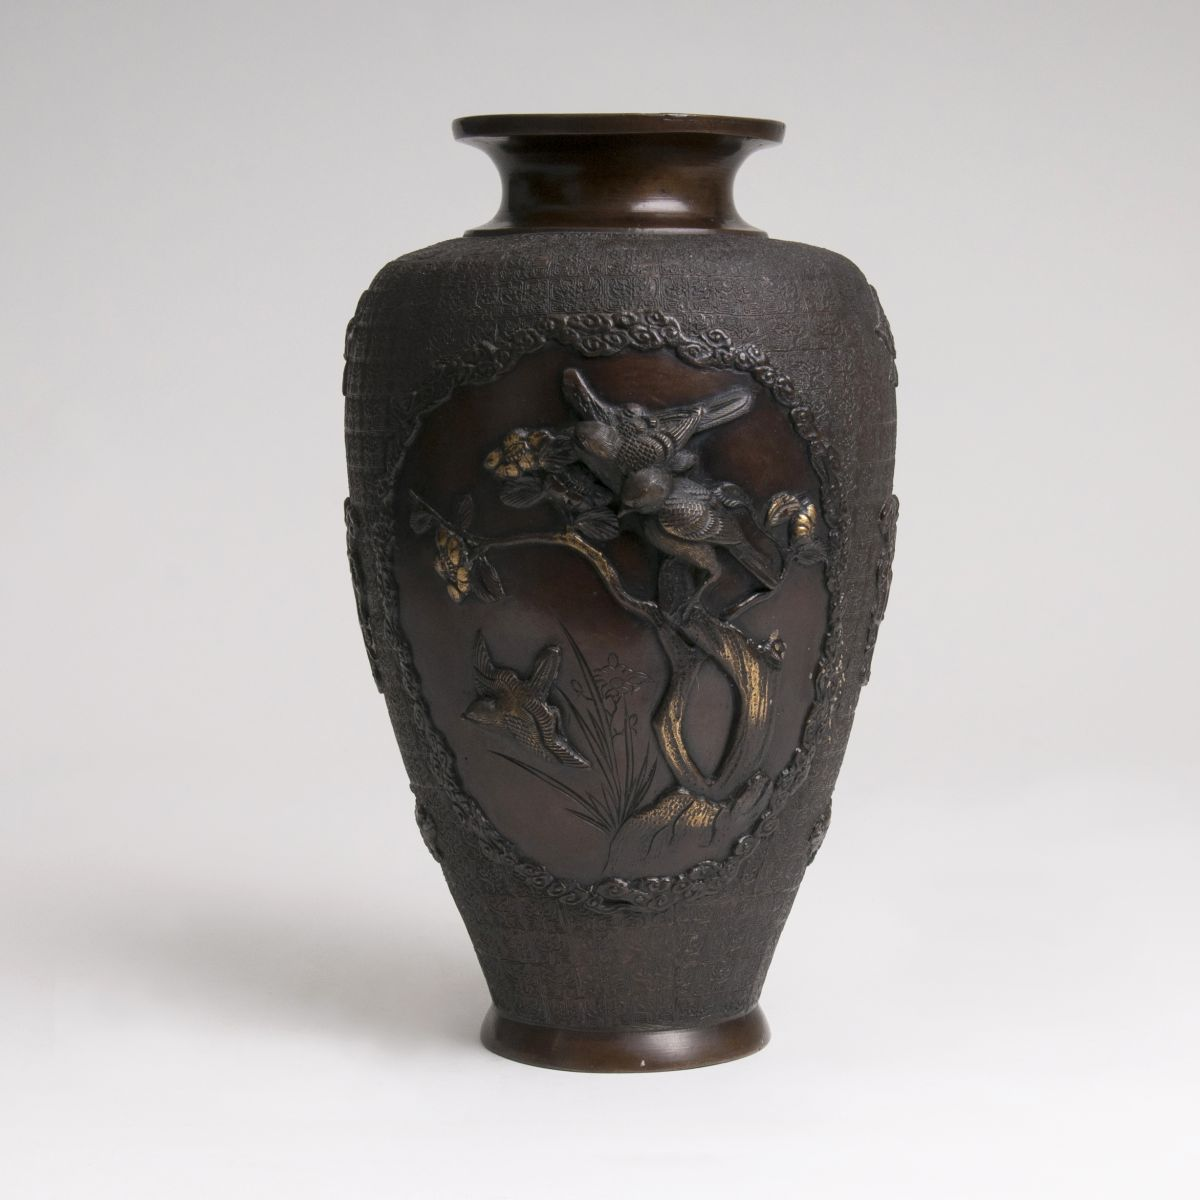 A Vase with rich relief decor